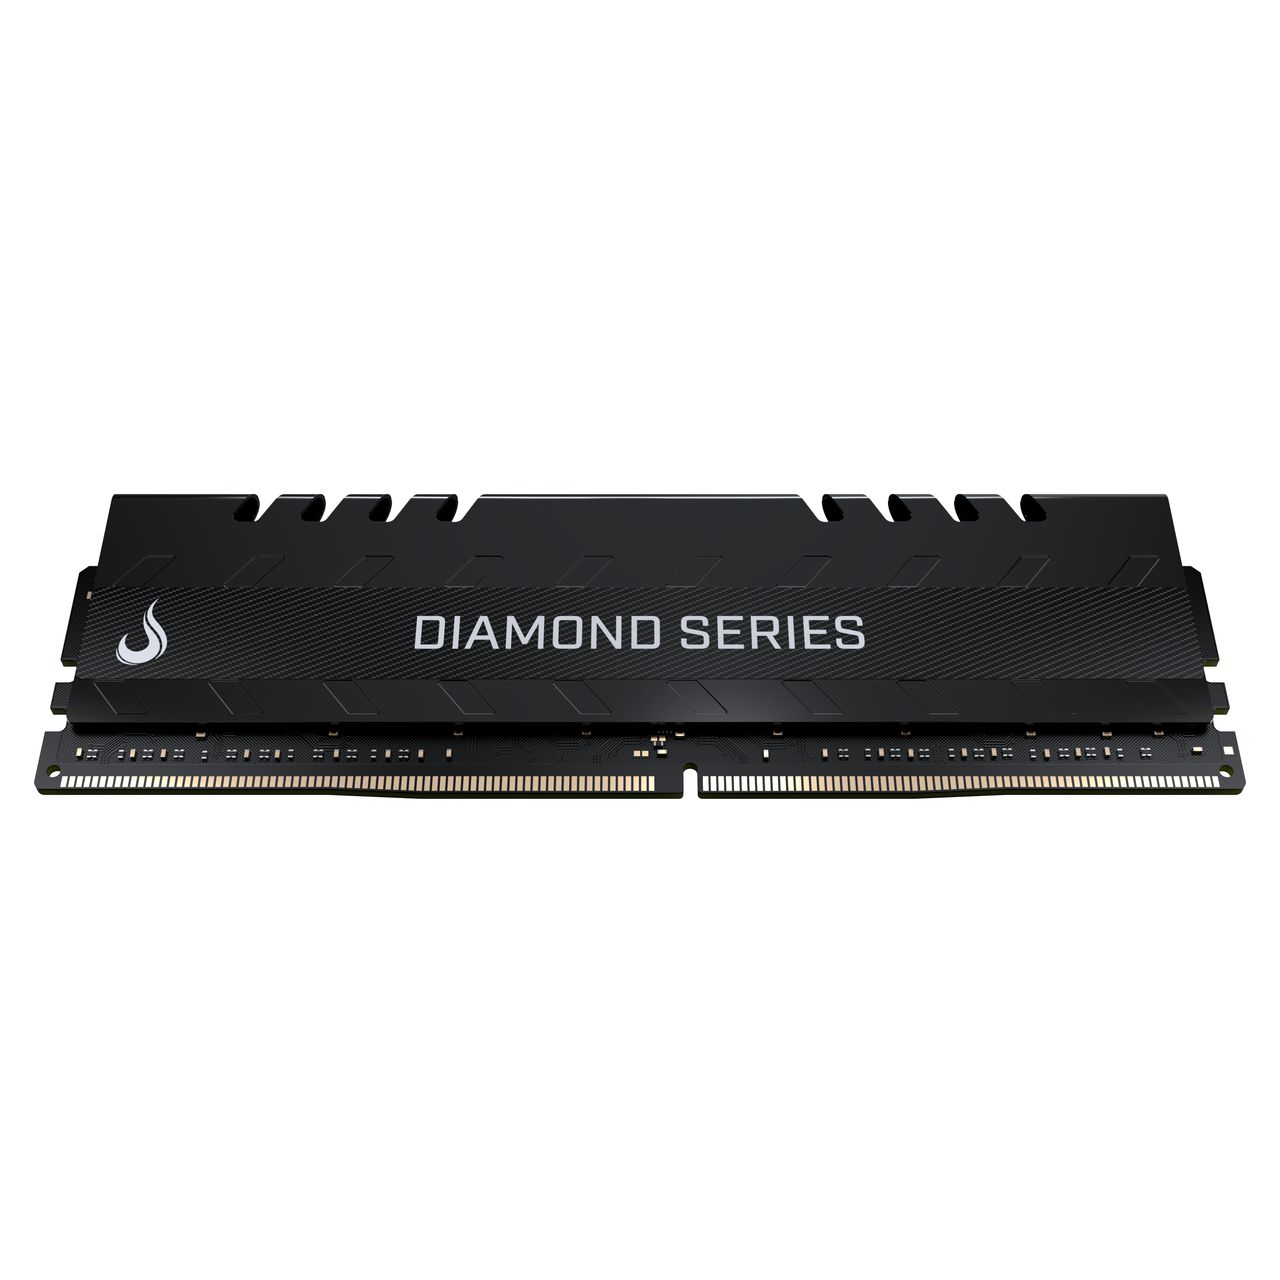 Memoria Ram DDR4 16GB 3000MHZ Diamond - RM-D4-16G-3000D BLACK  - Loja Rise Mode